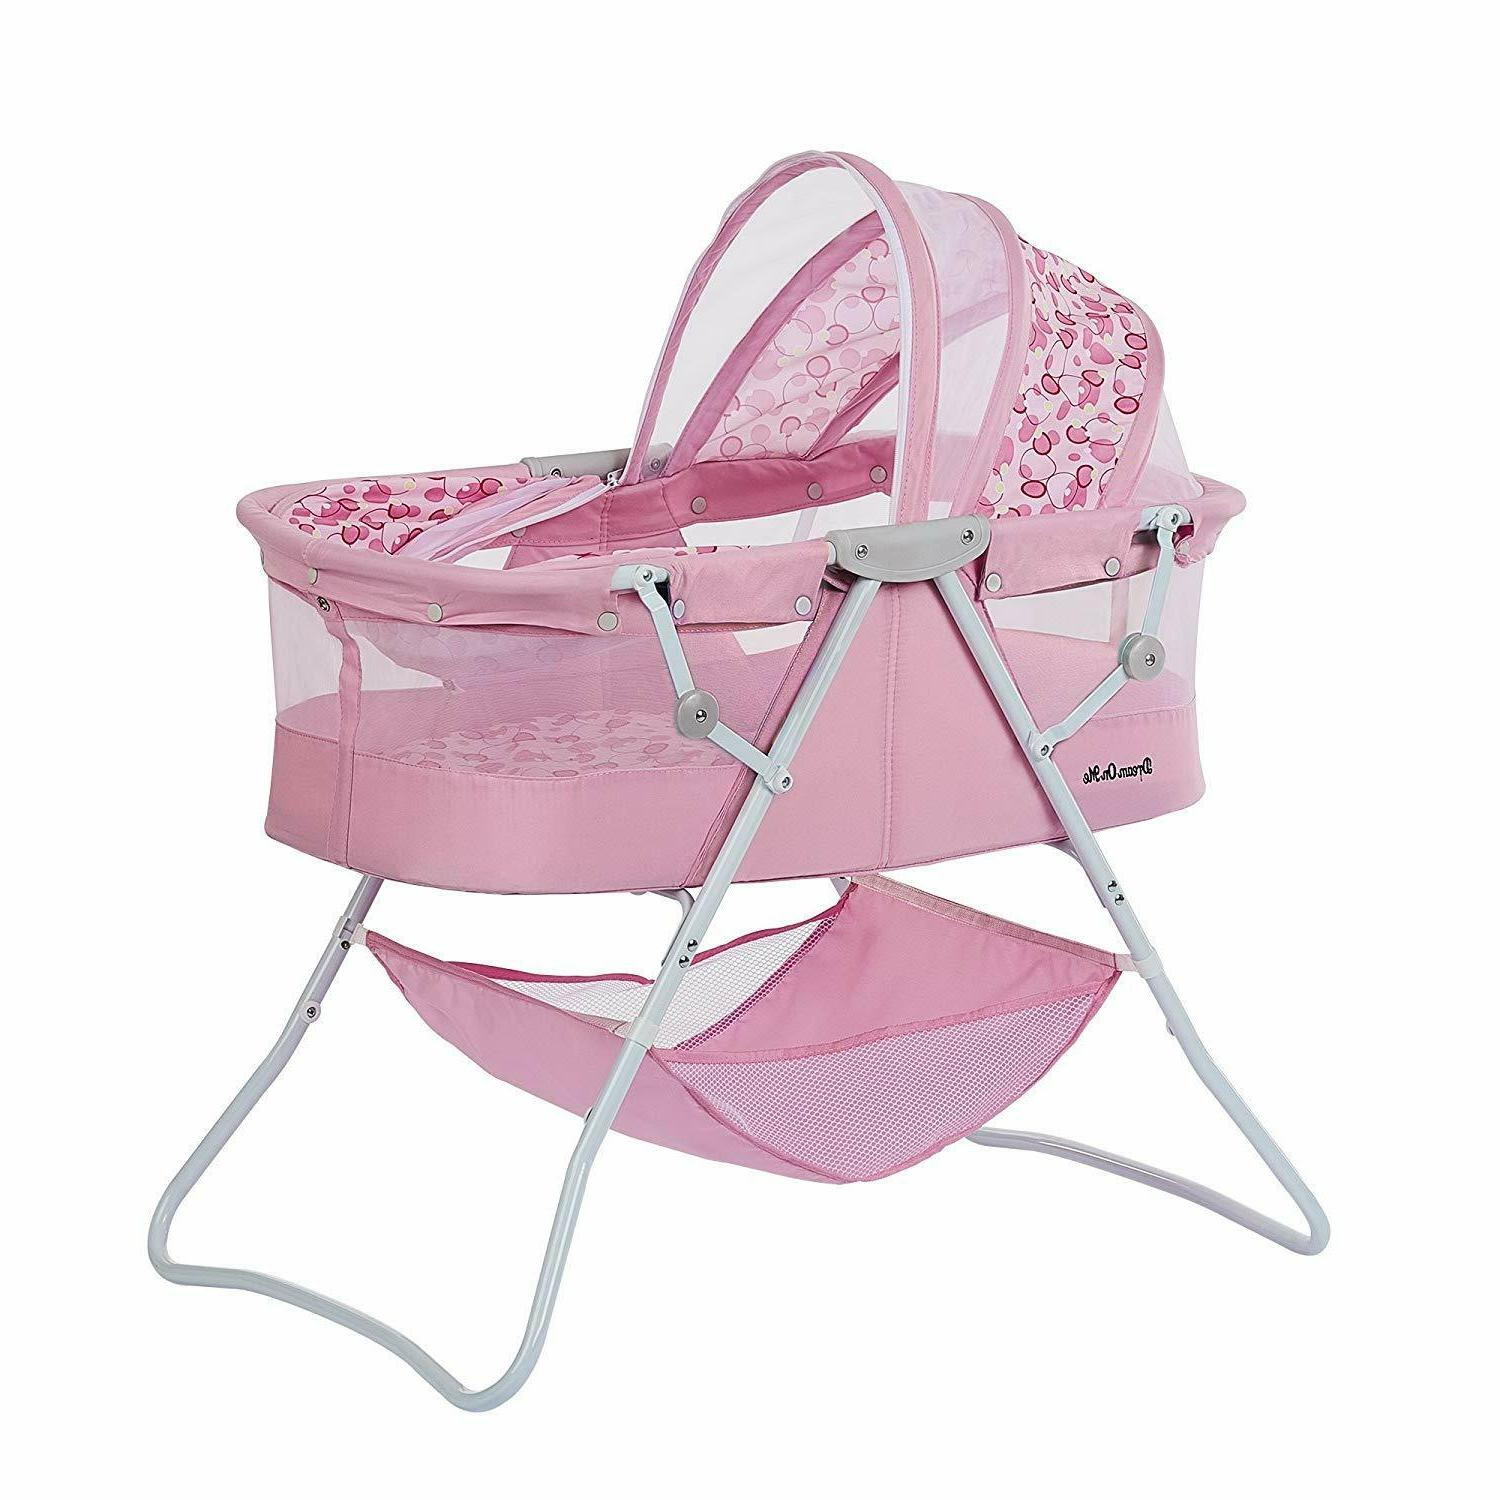 Dream On Bassinet, Pink